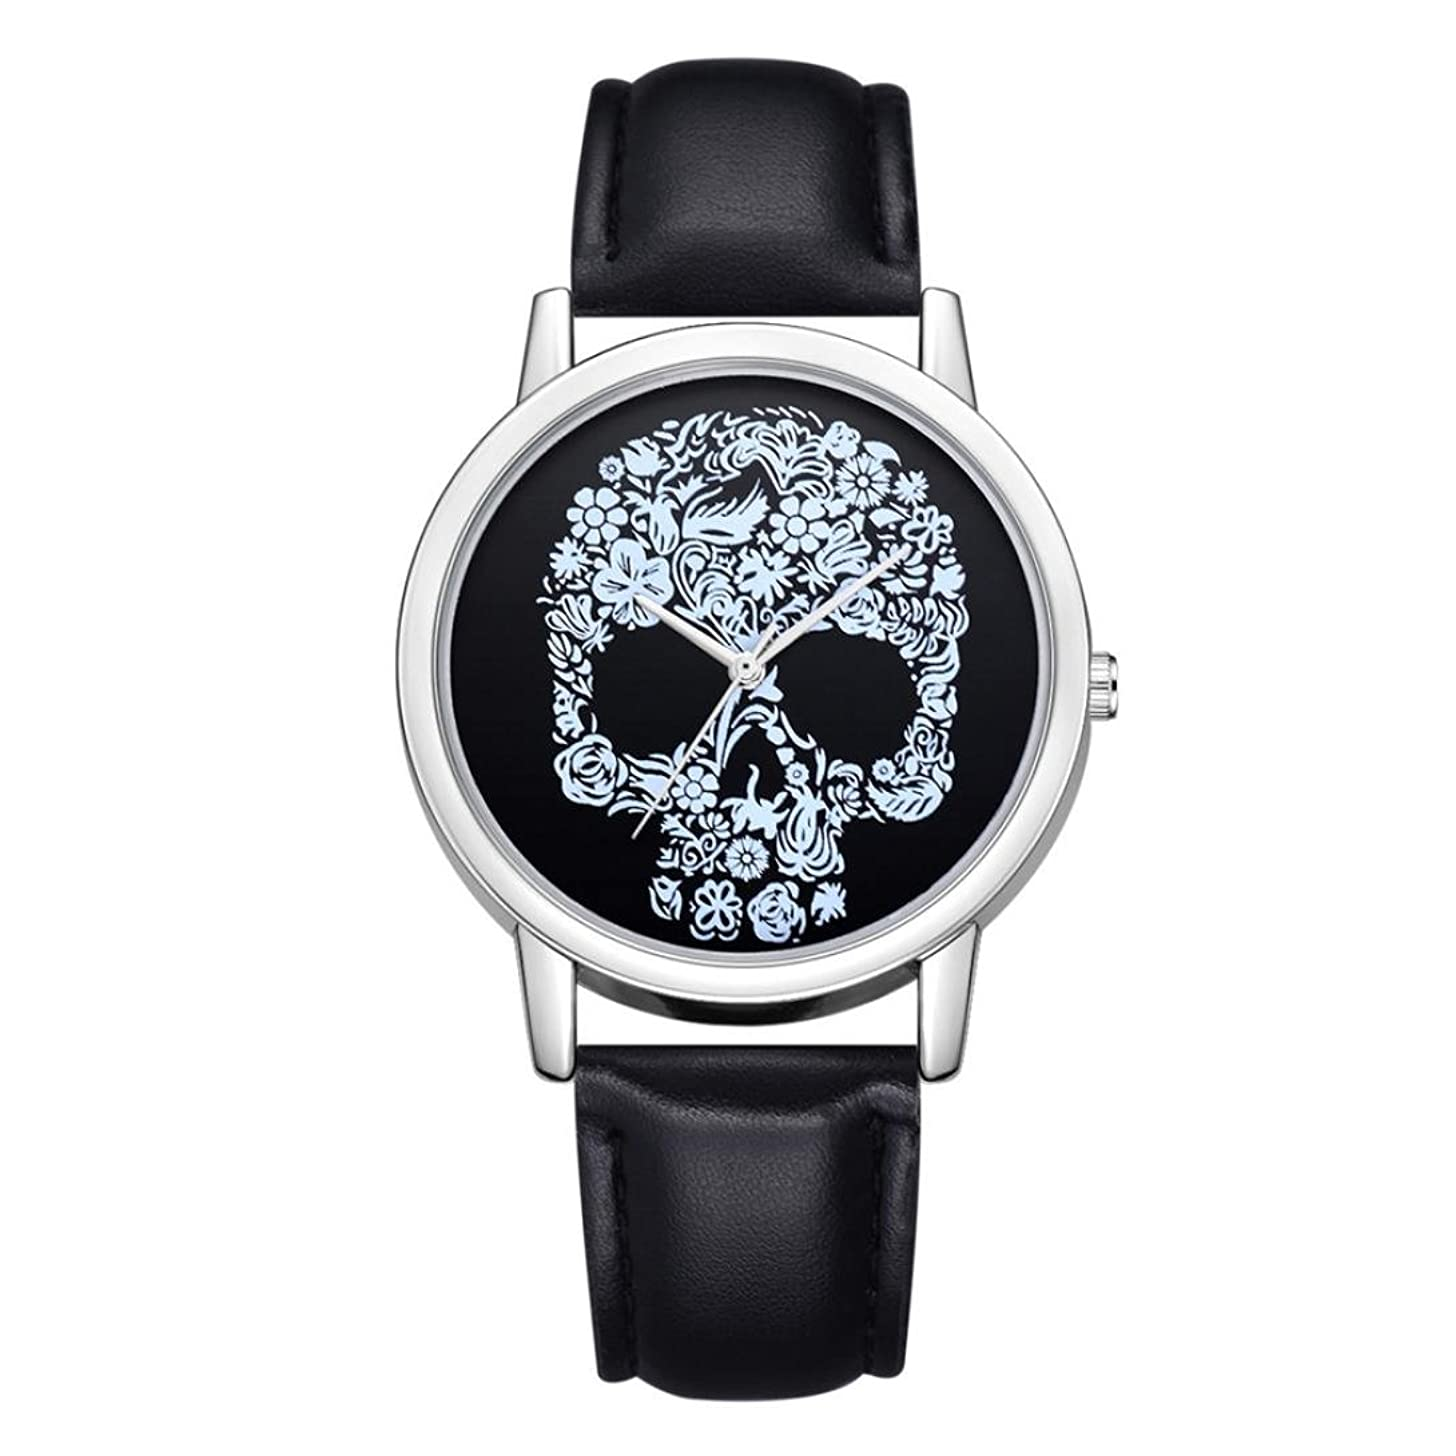 Swyss Fashion Skull Pattern Dial Personality Analog Quartz Wrist Watch Simple Casual Watch Chic Charm Classic Accessories (B)